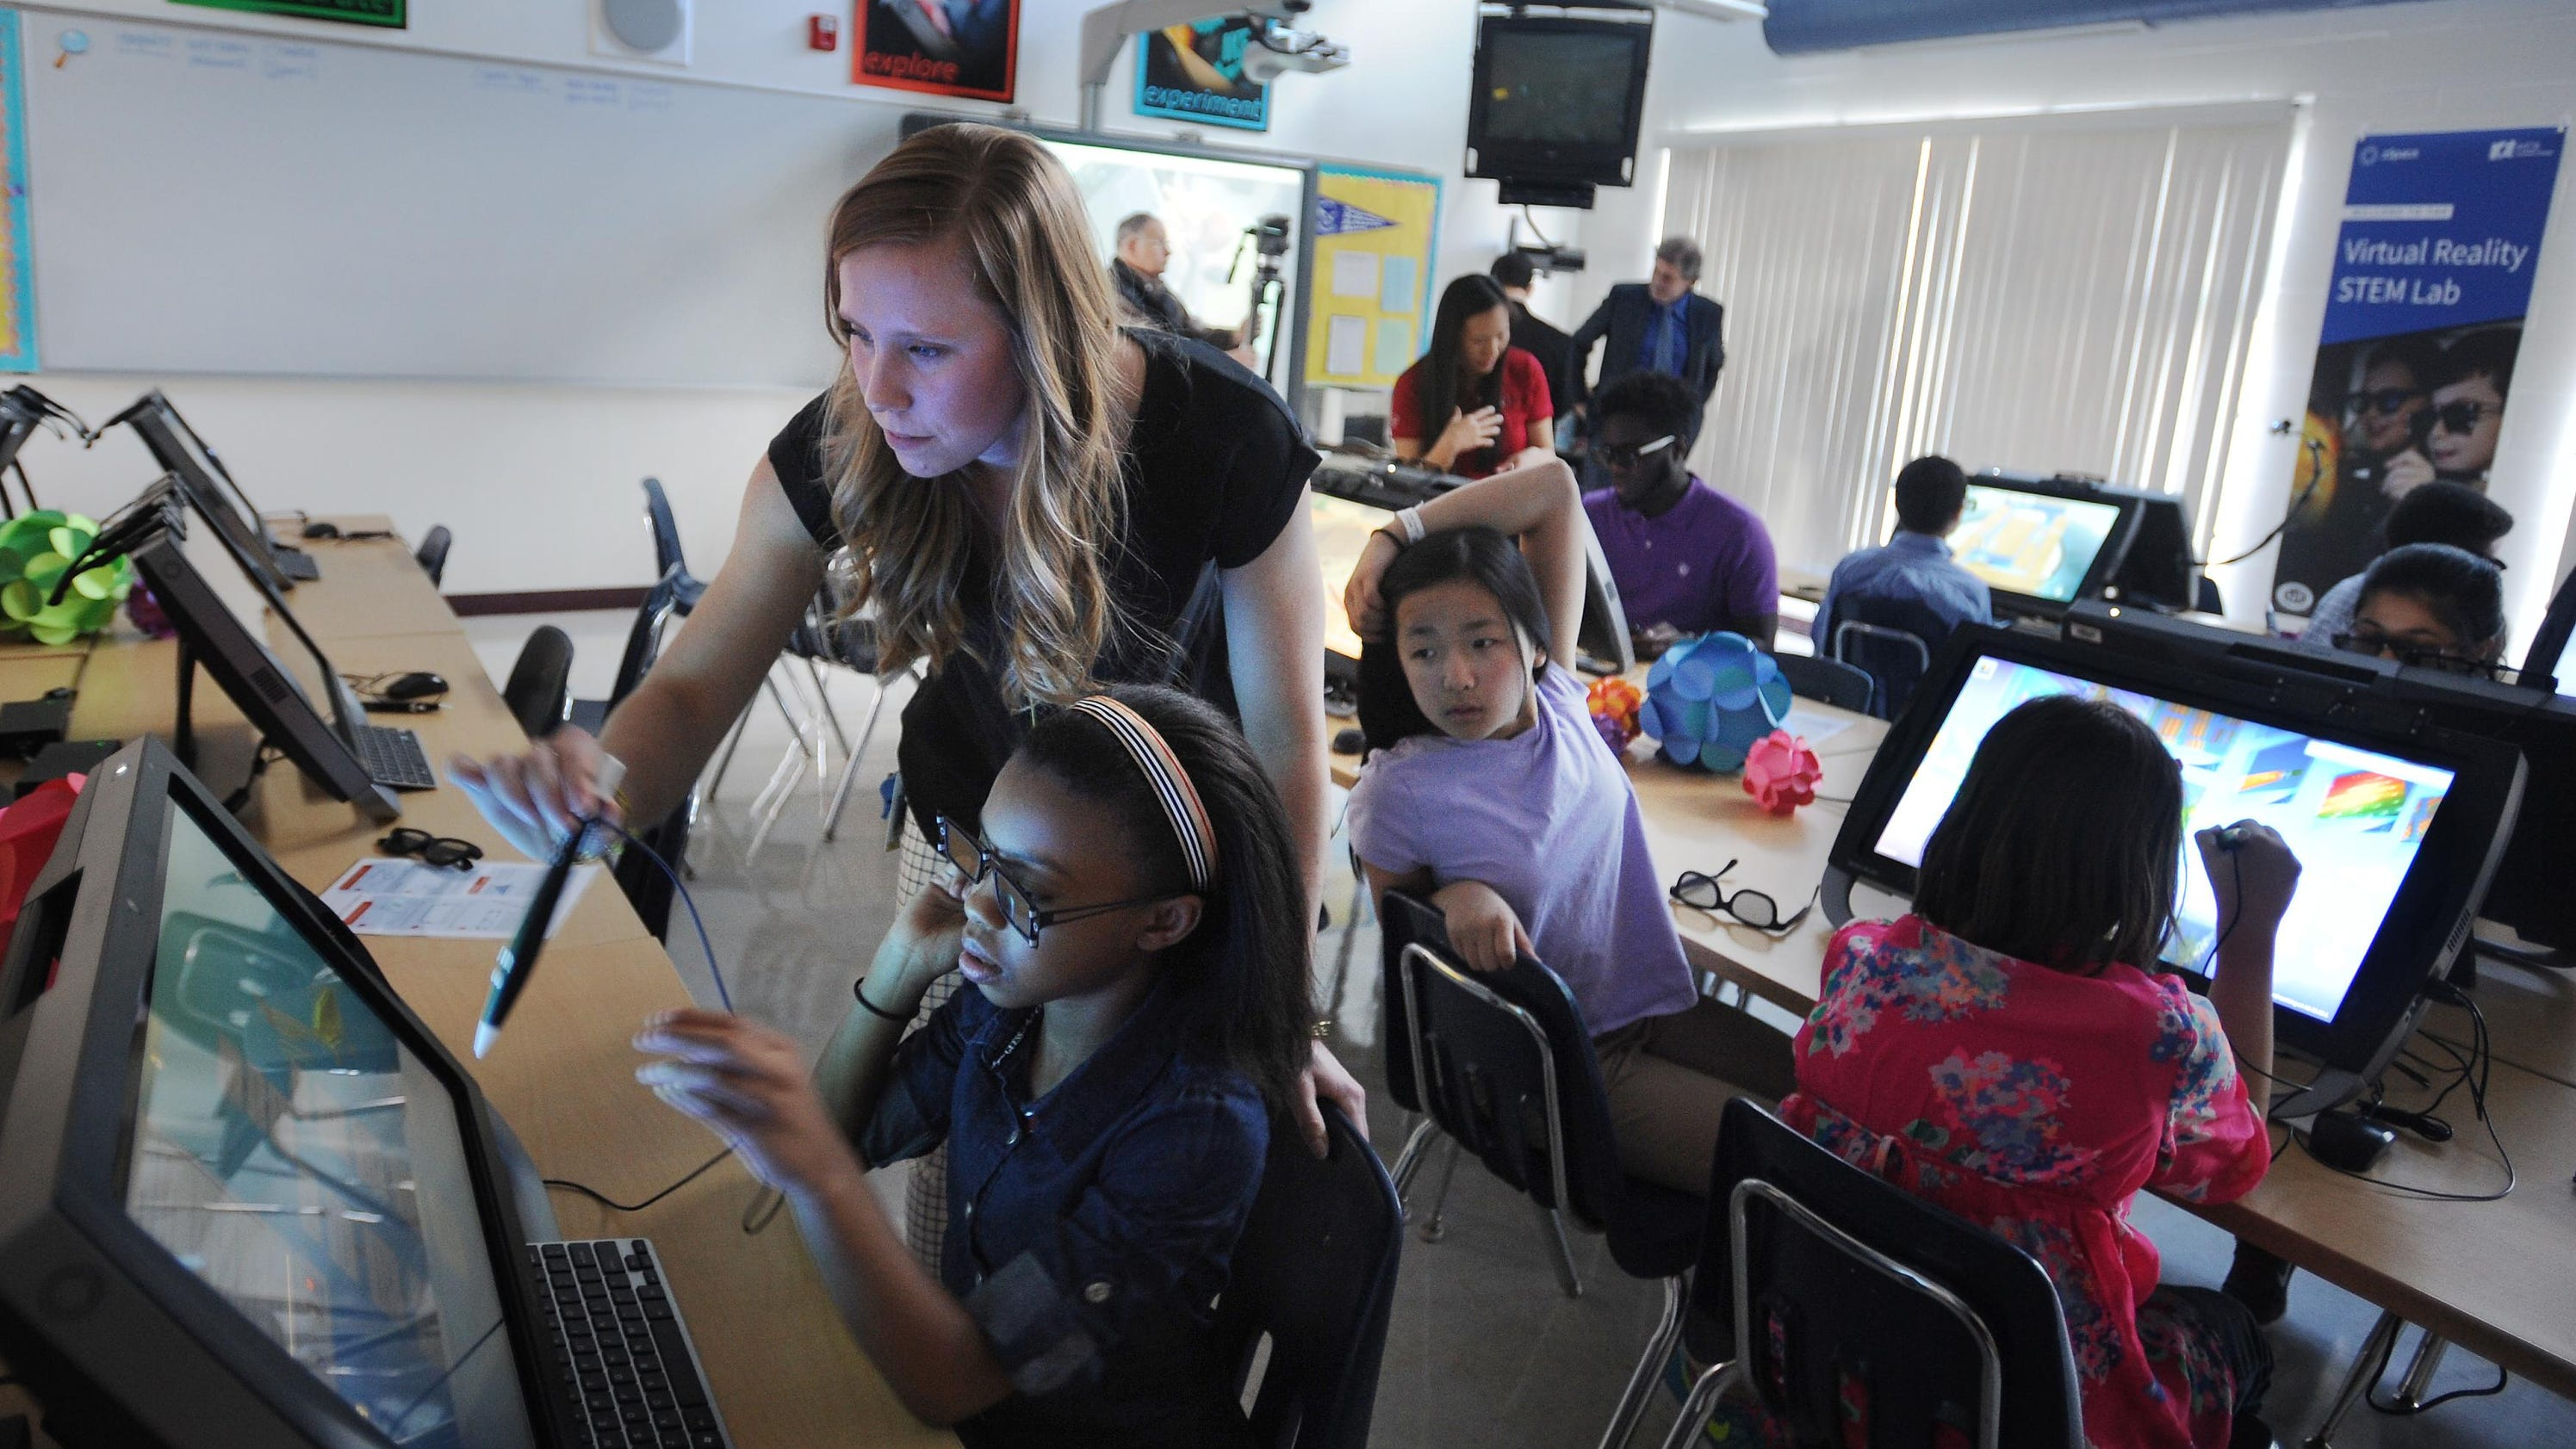 Business leaders urge changes to K-12 education